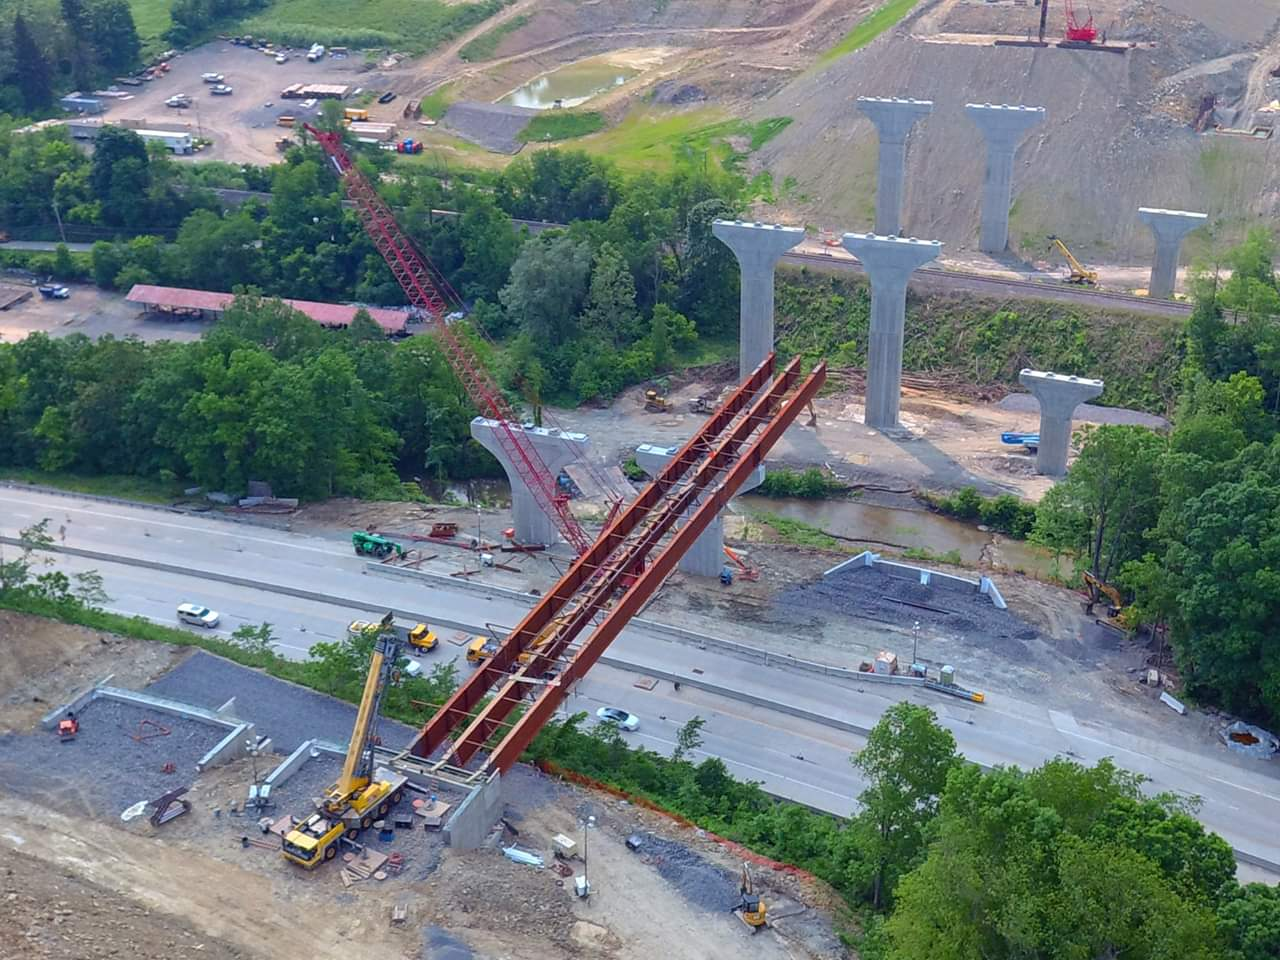 Steel girder erection is underway on the 55C1-1 section of the PA turnpike Southern Beltway